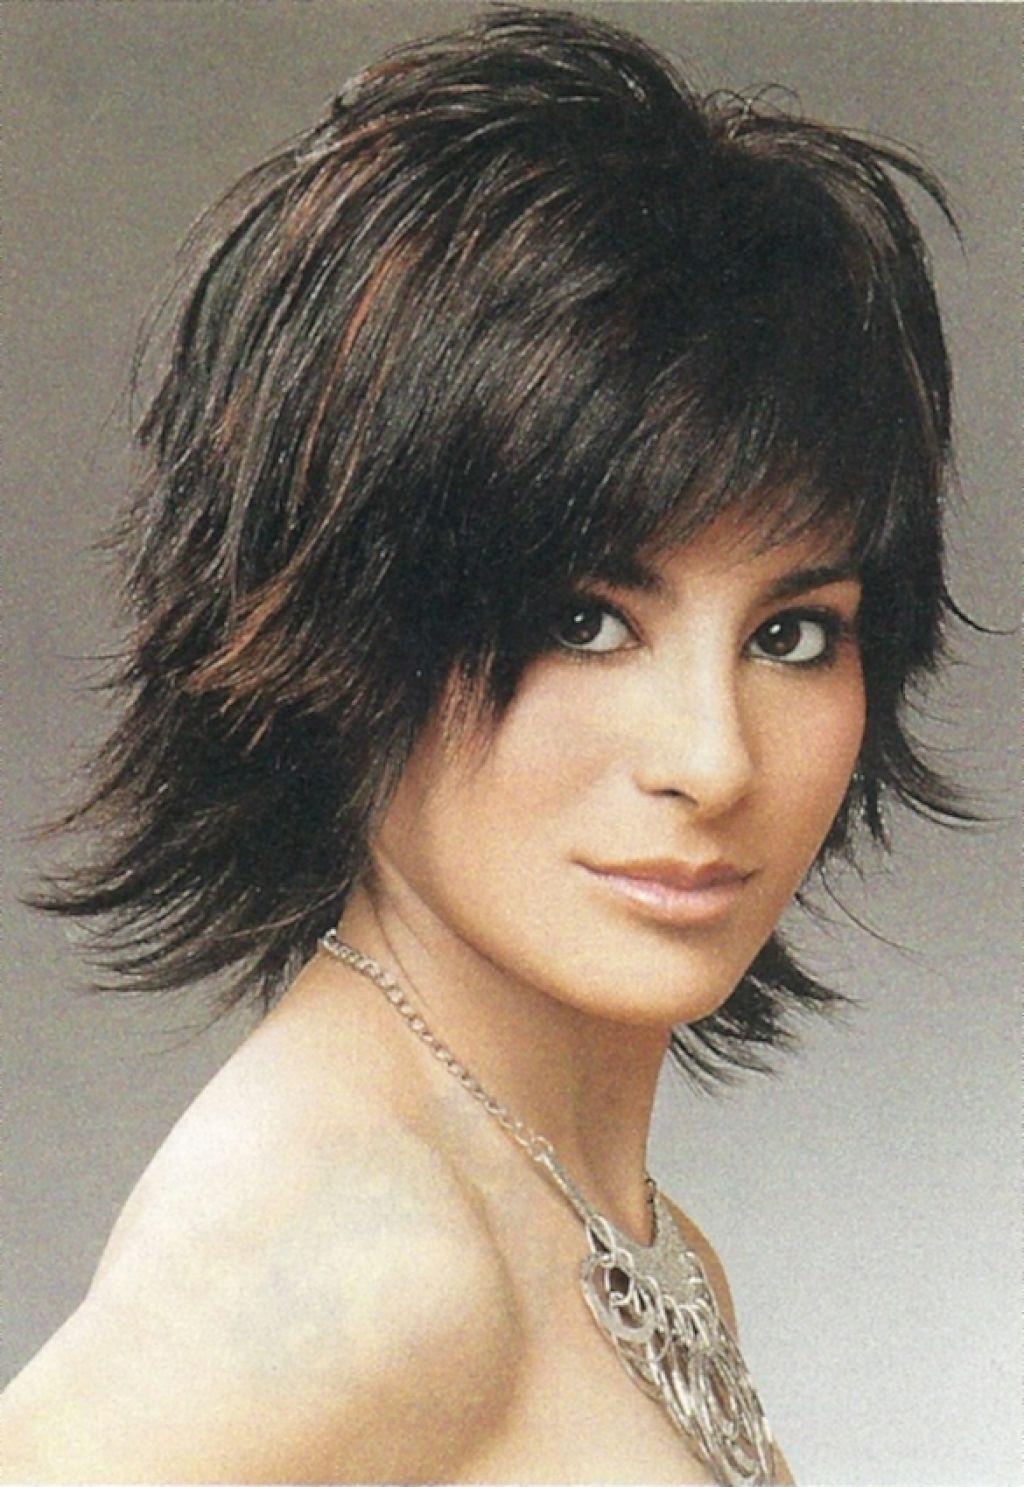 Shag Hairstyles , Short To Pertaining To Most Popular Medium Shaggy Haircuts With Bangs (View 13 of 15)